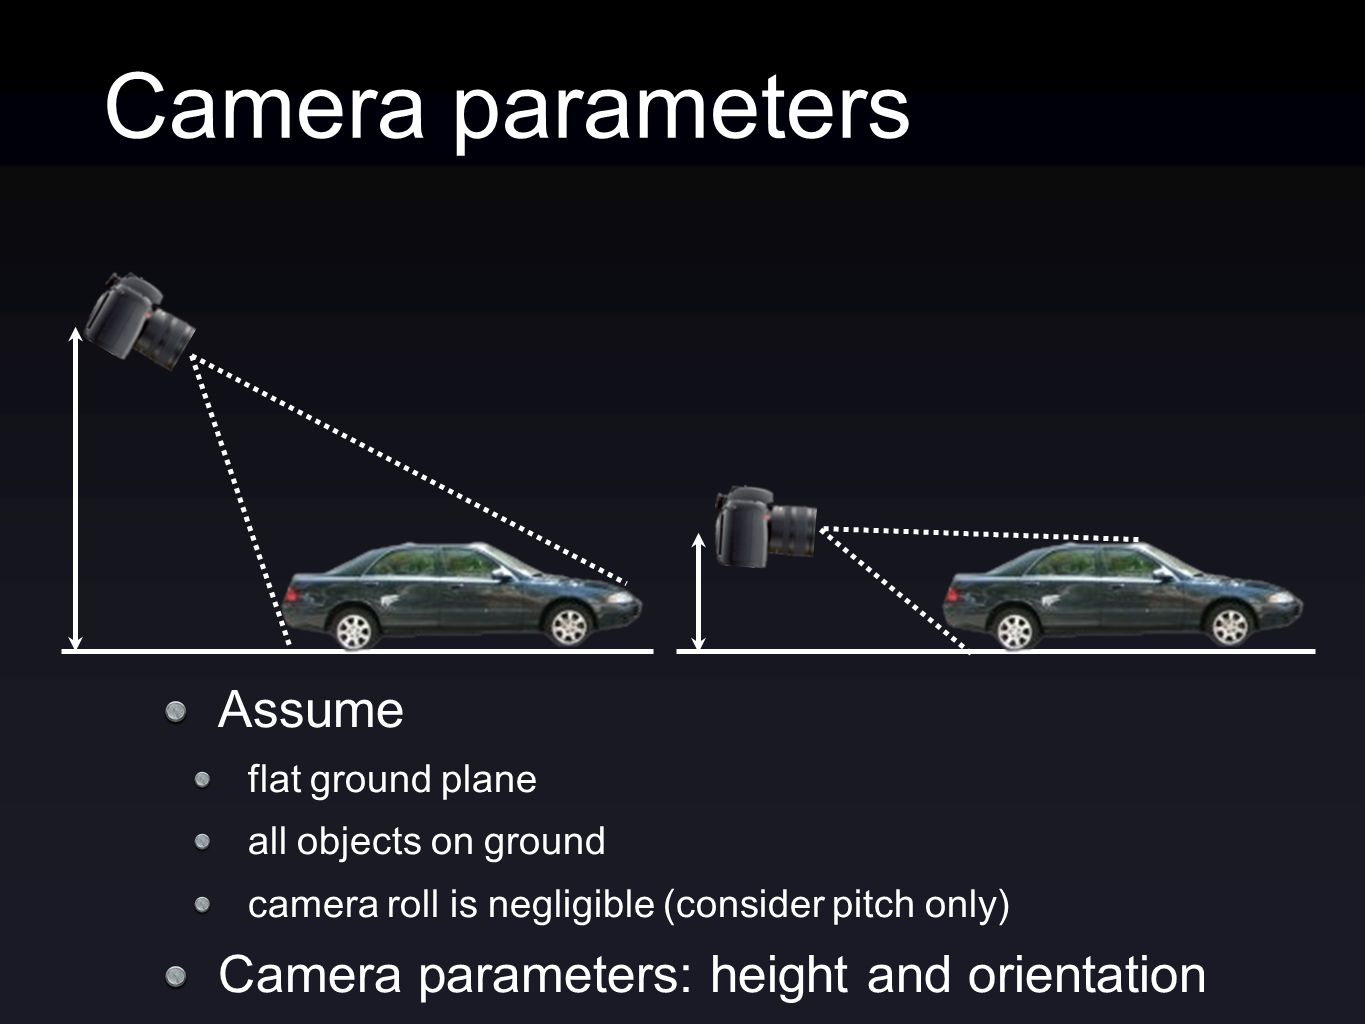 Camera parameters Assume flat ground plane all objects on ground camera roll is negligible (consider pitch only) Camera parameters: height and orientation